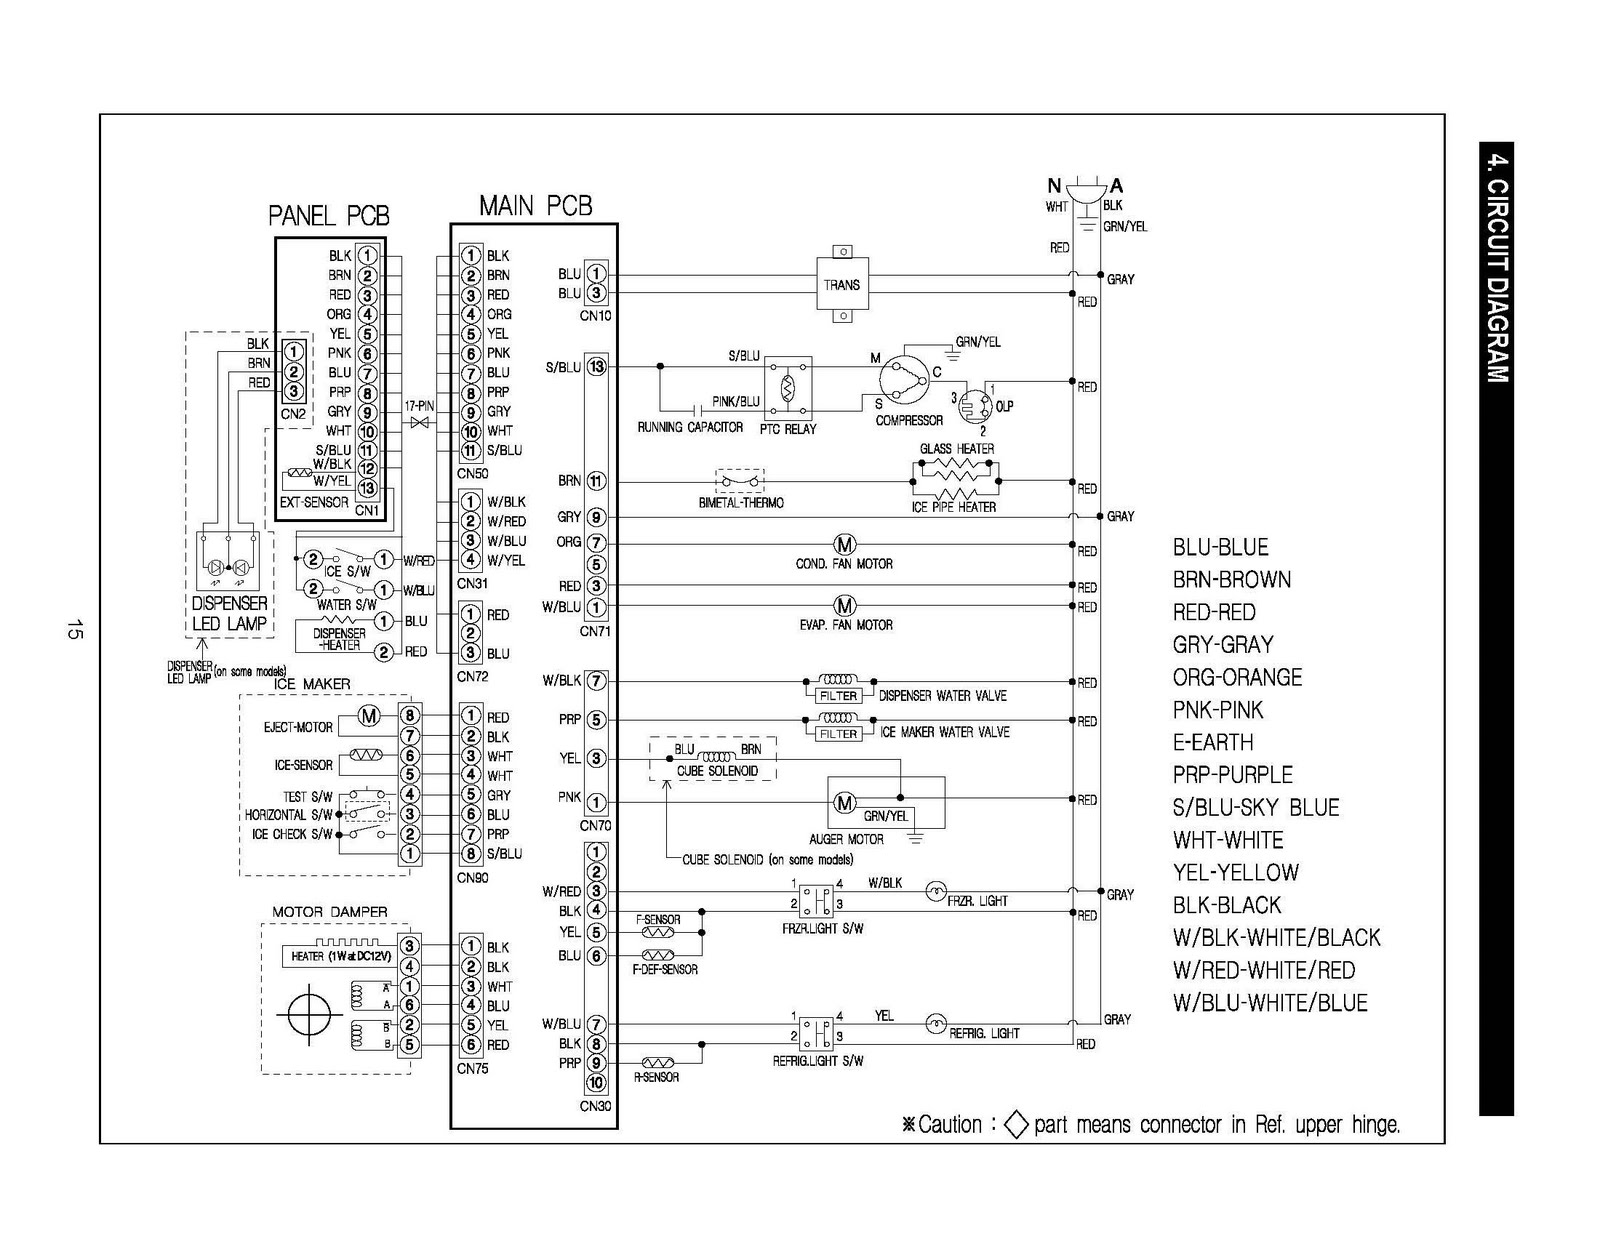 samsung rf217acbp refrigerator wiring diagram seabreeze appliance parts and technical services: rs2531 ...